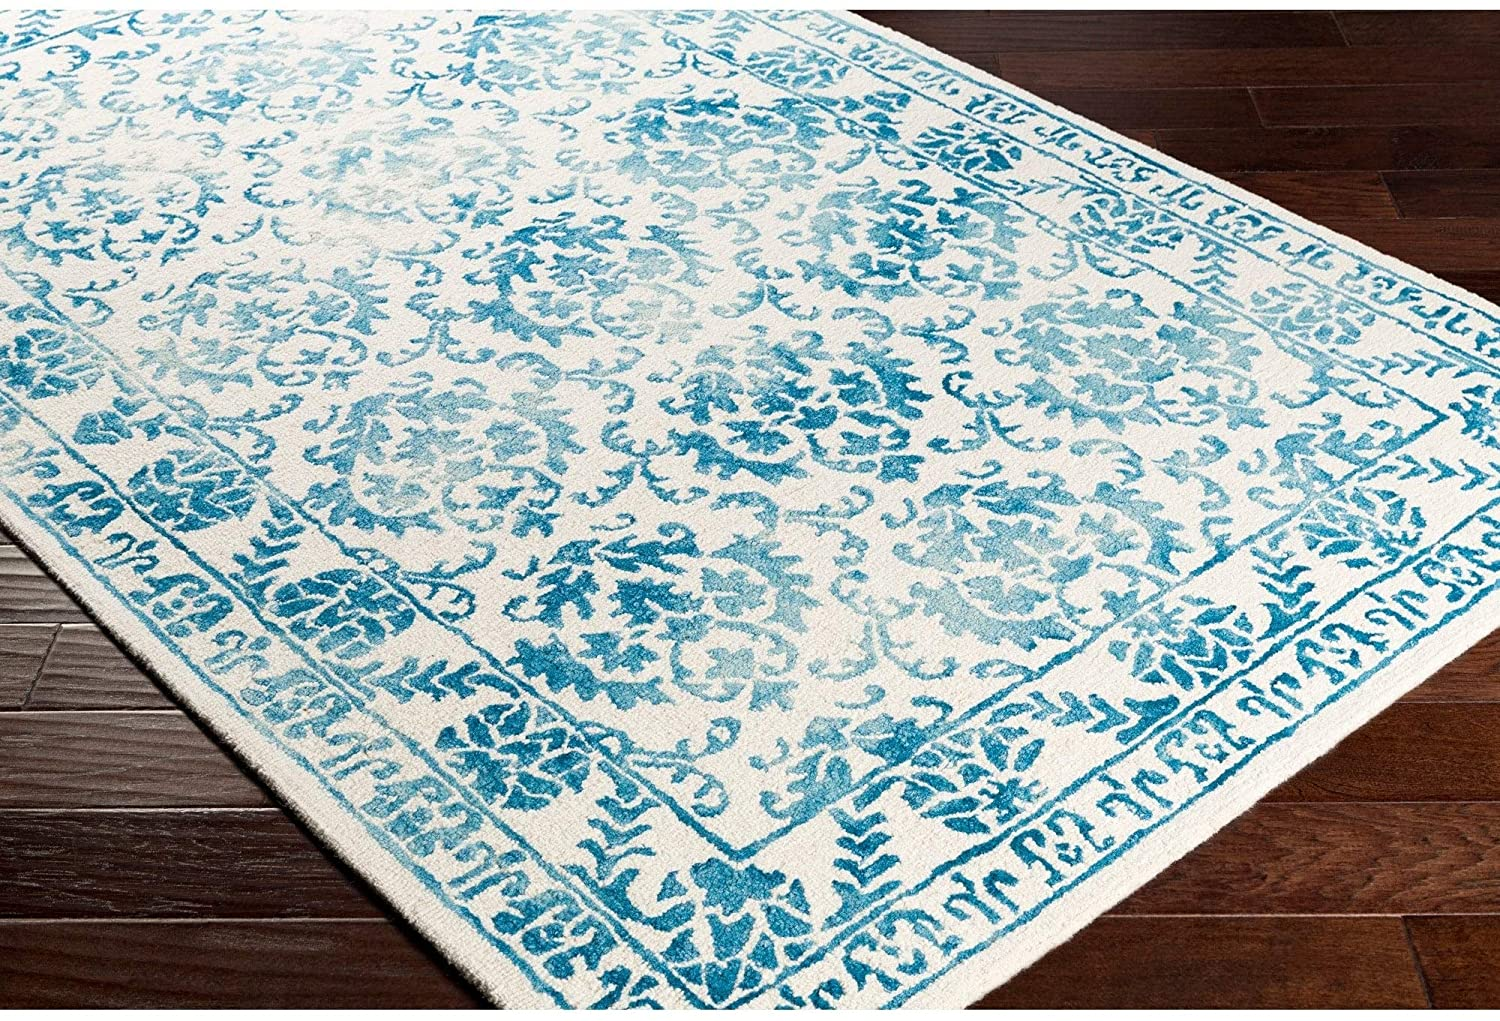 Colonial Home Blue Vintage Oriental Handmade Area Rug 6' Round Transitional Wool Latex Free